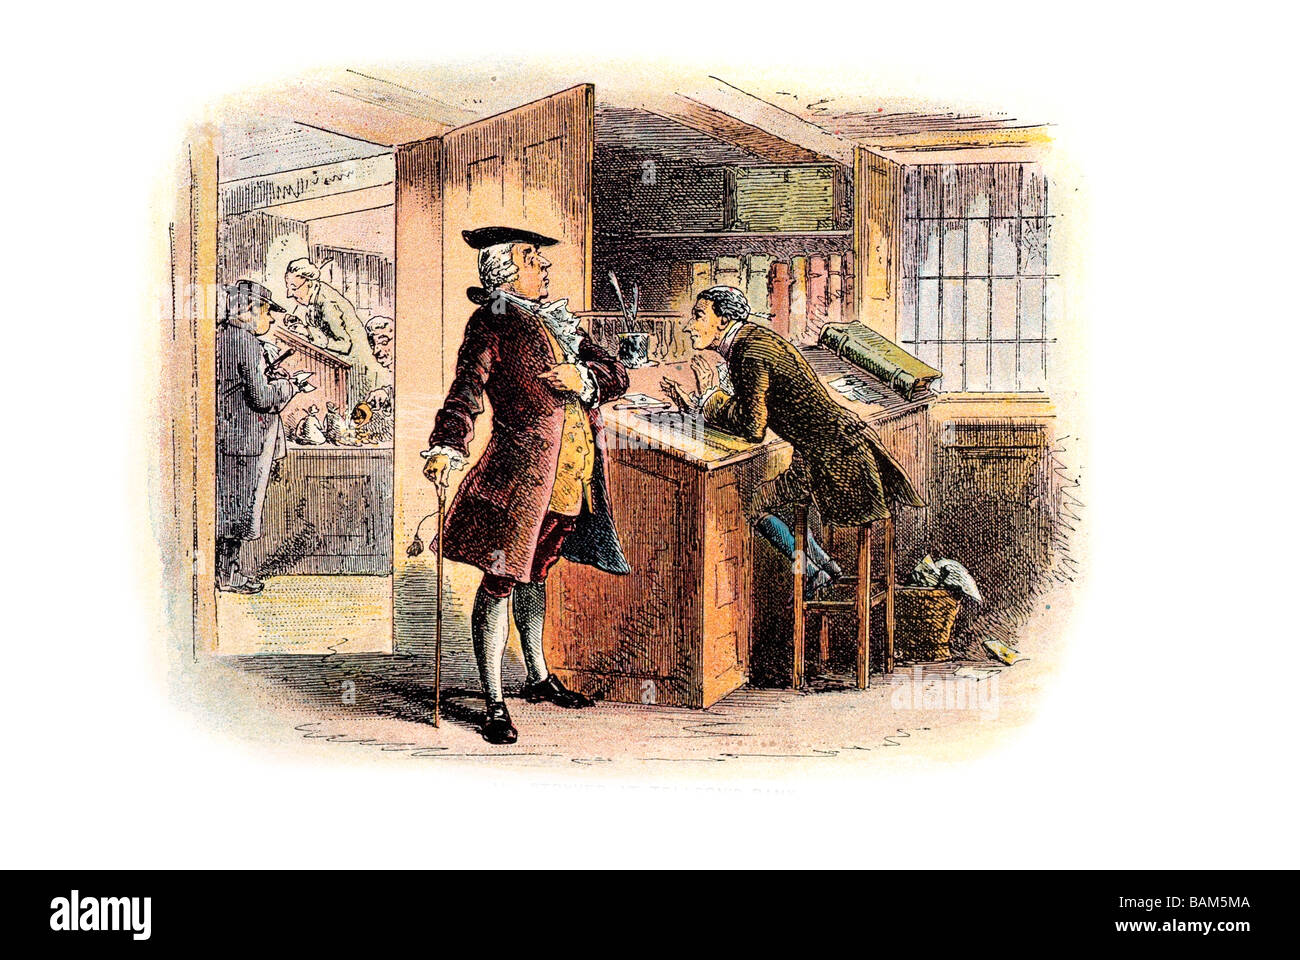 a review of charles dickens tale of two cities A tale of two cities was the twelfth novel of charles dickens the first chapters of the book appeared in print in april of 1859 the last chapter was printed in november of that same year.